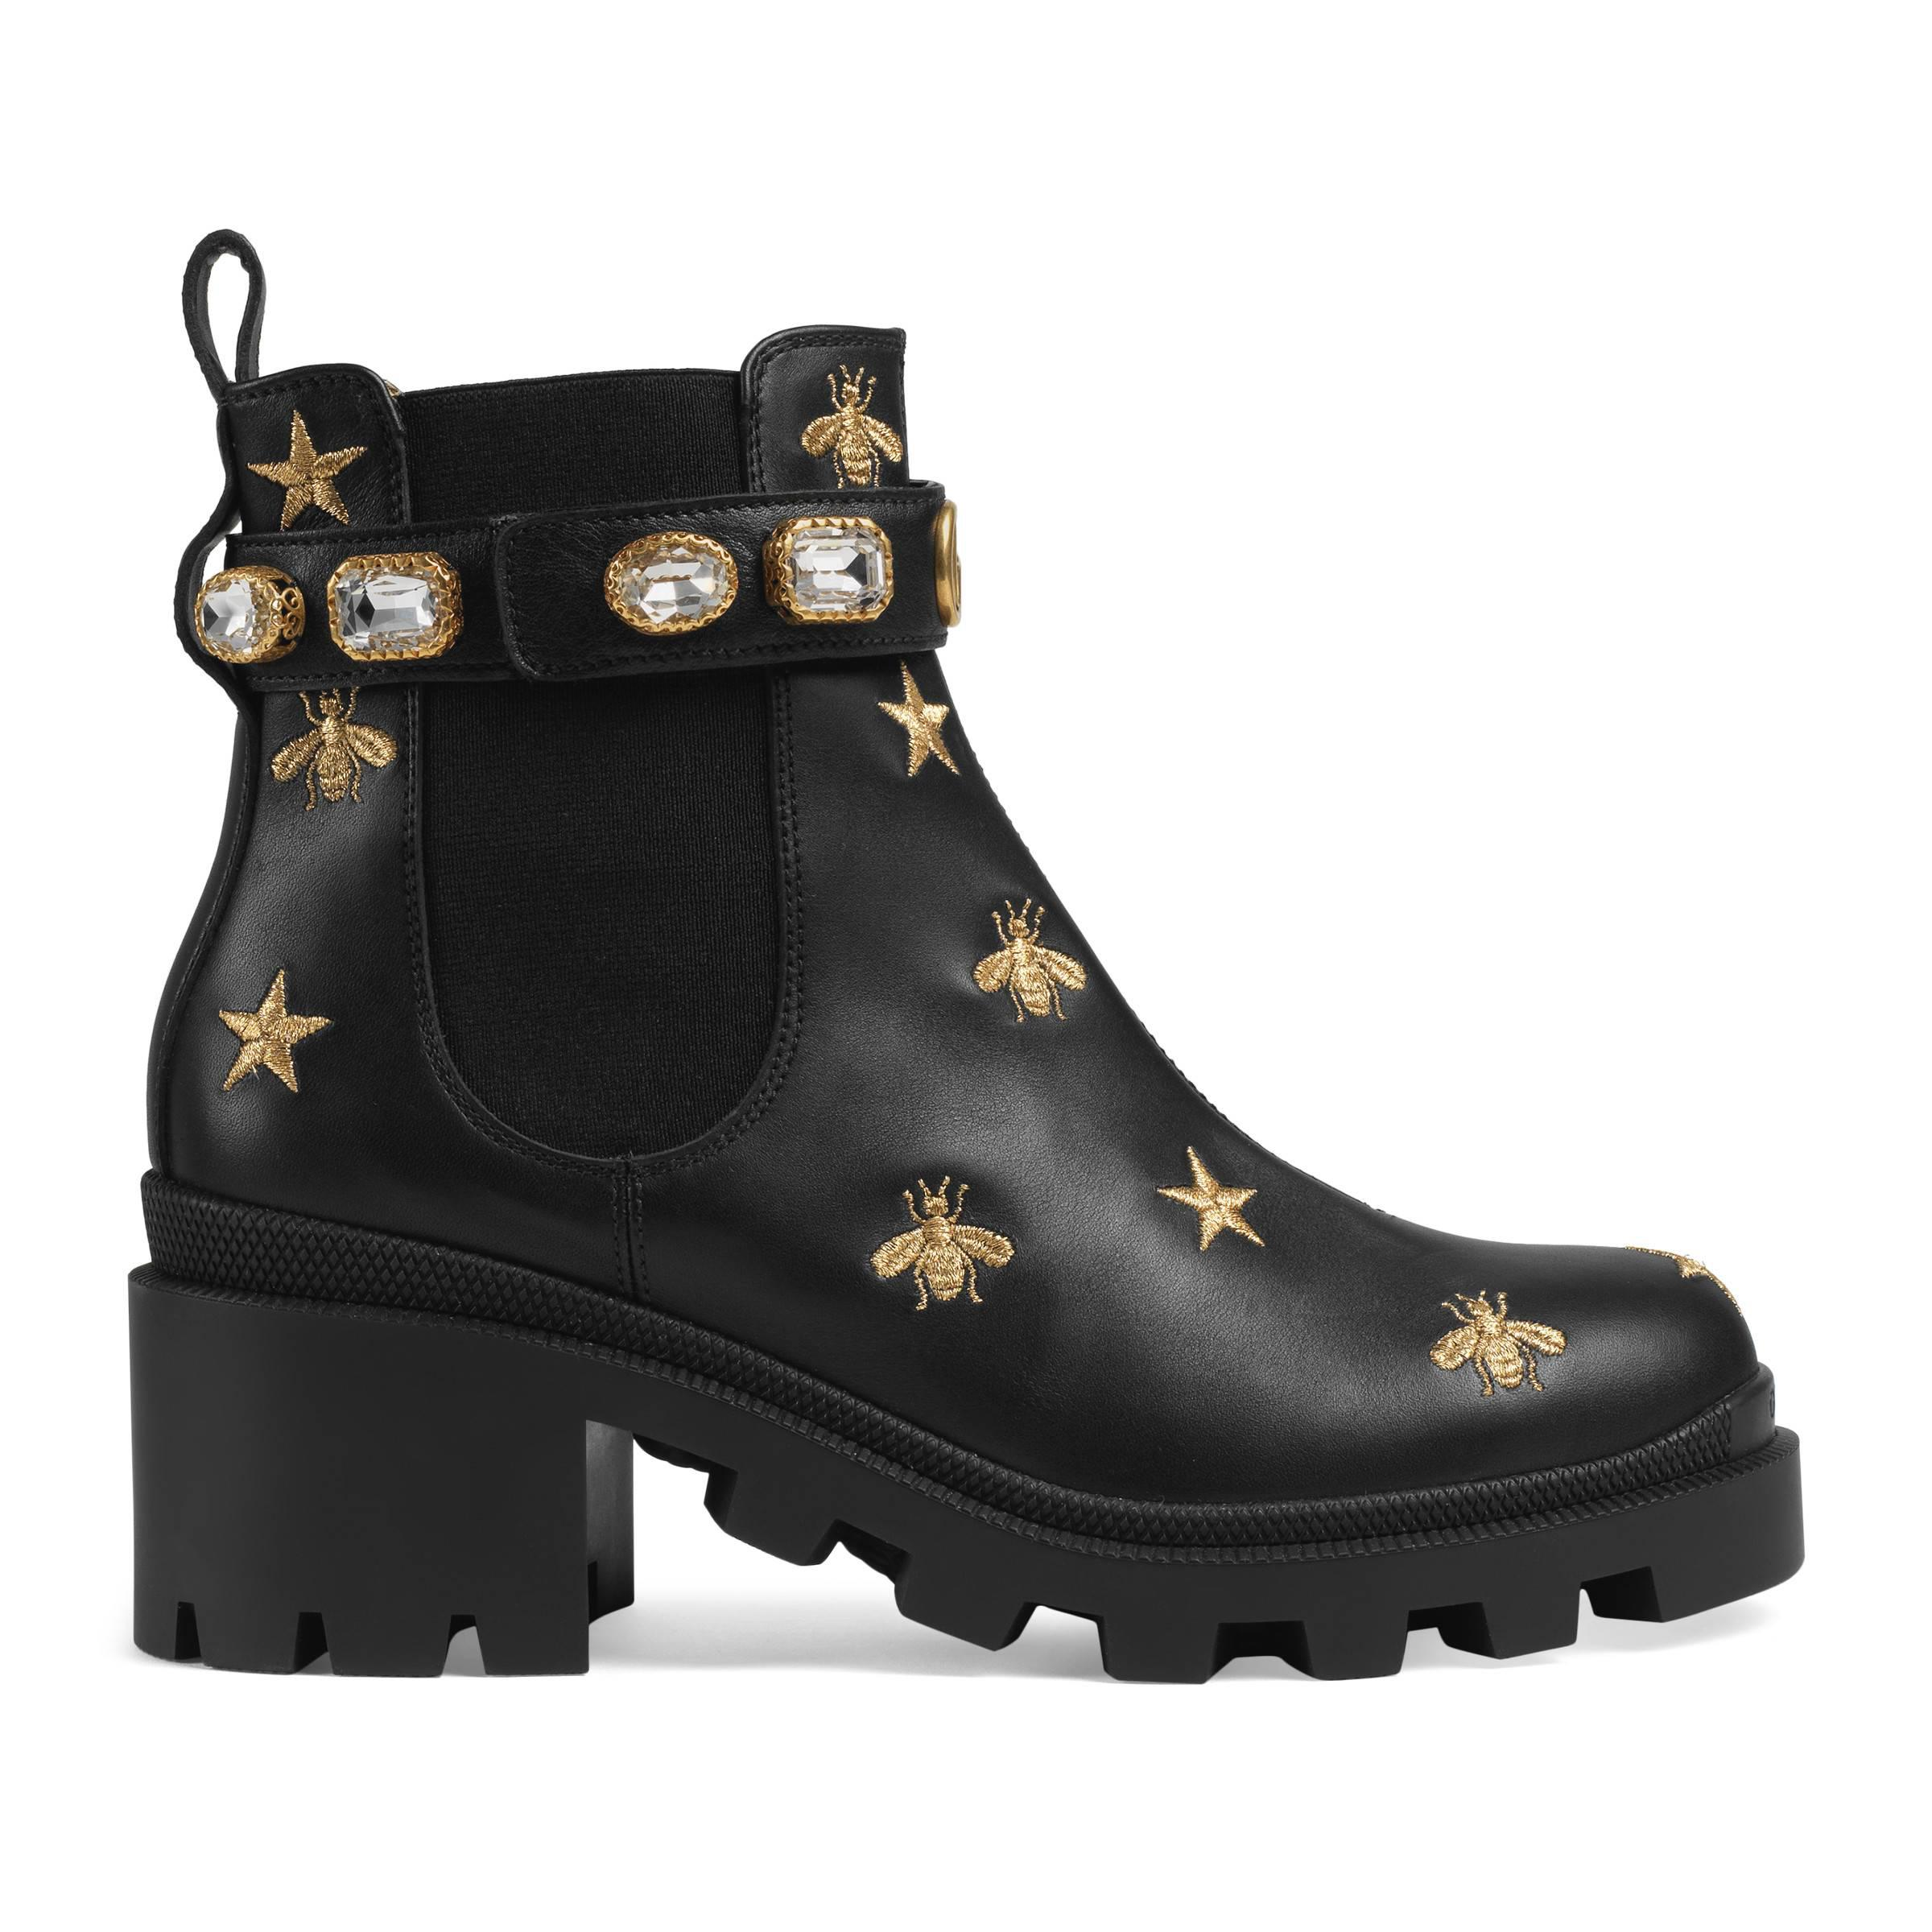 Gucci Embroidered Leather Ankle Boot